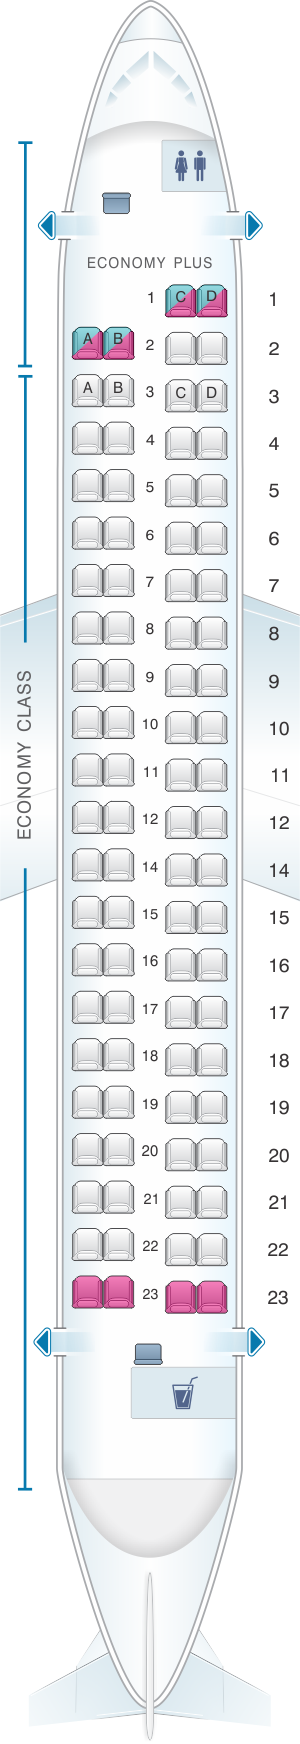 Seat map for Philippine Airlines Bombardier Q400